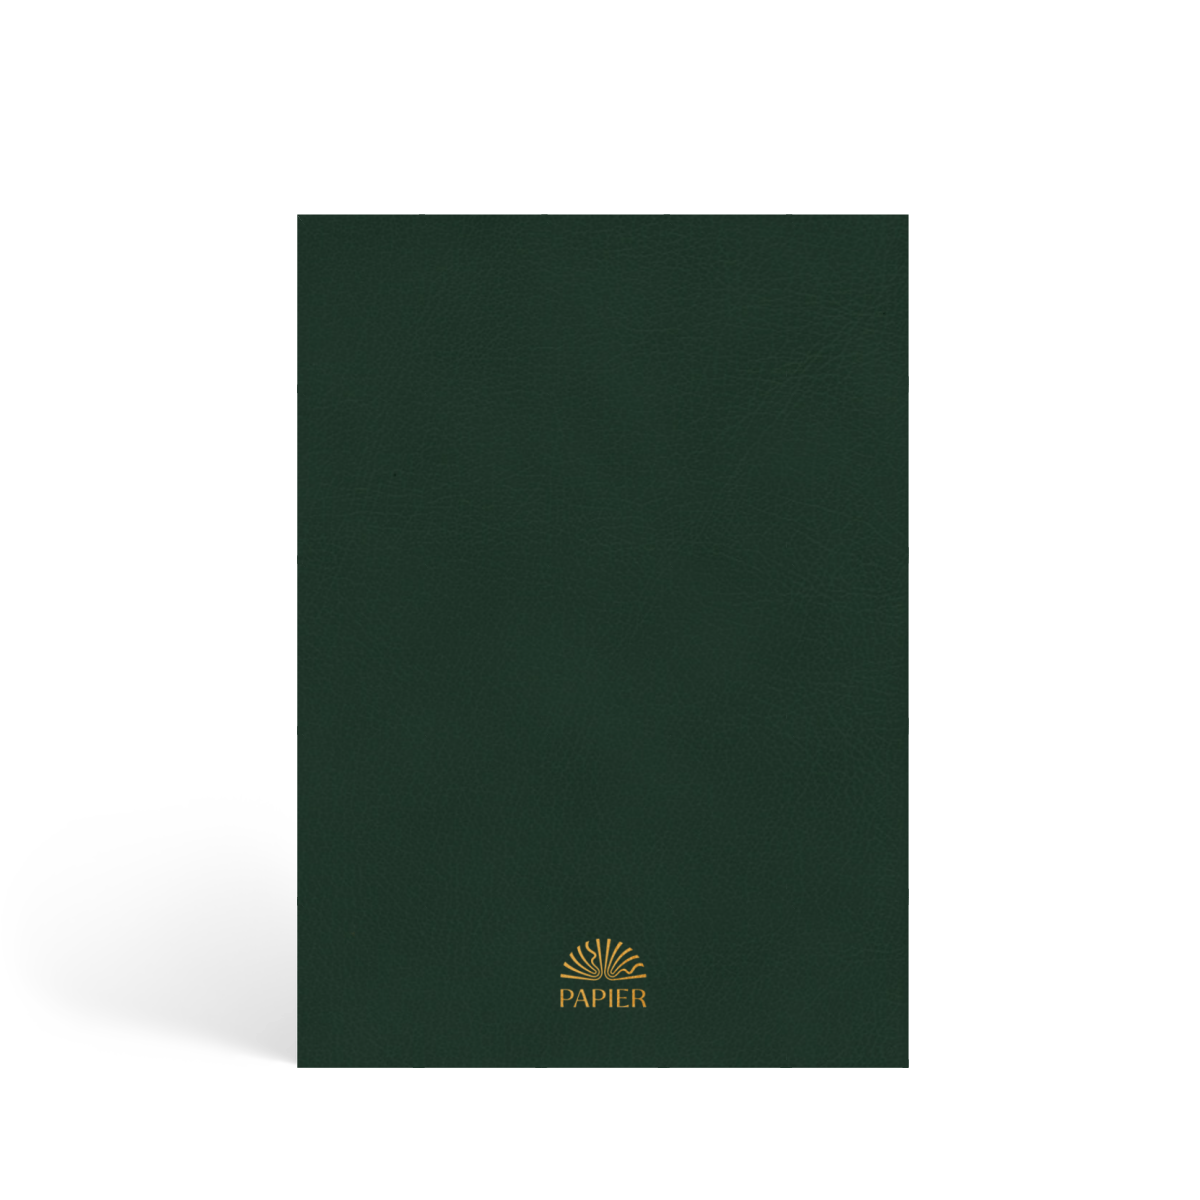 Https%3a%2f%2fwww.papier.com%2fproduct image%2f93667%2f5%2fpine green notes 23427 back 1573232568.png?ixlib=rb 1.1